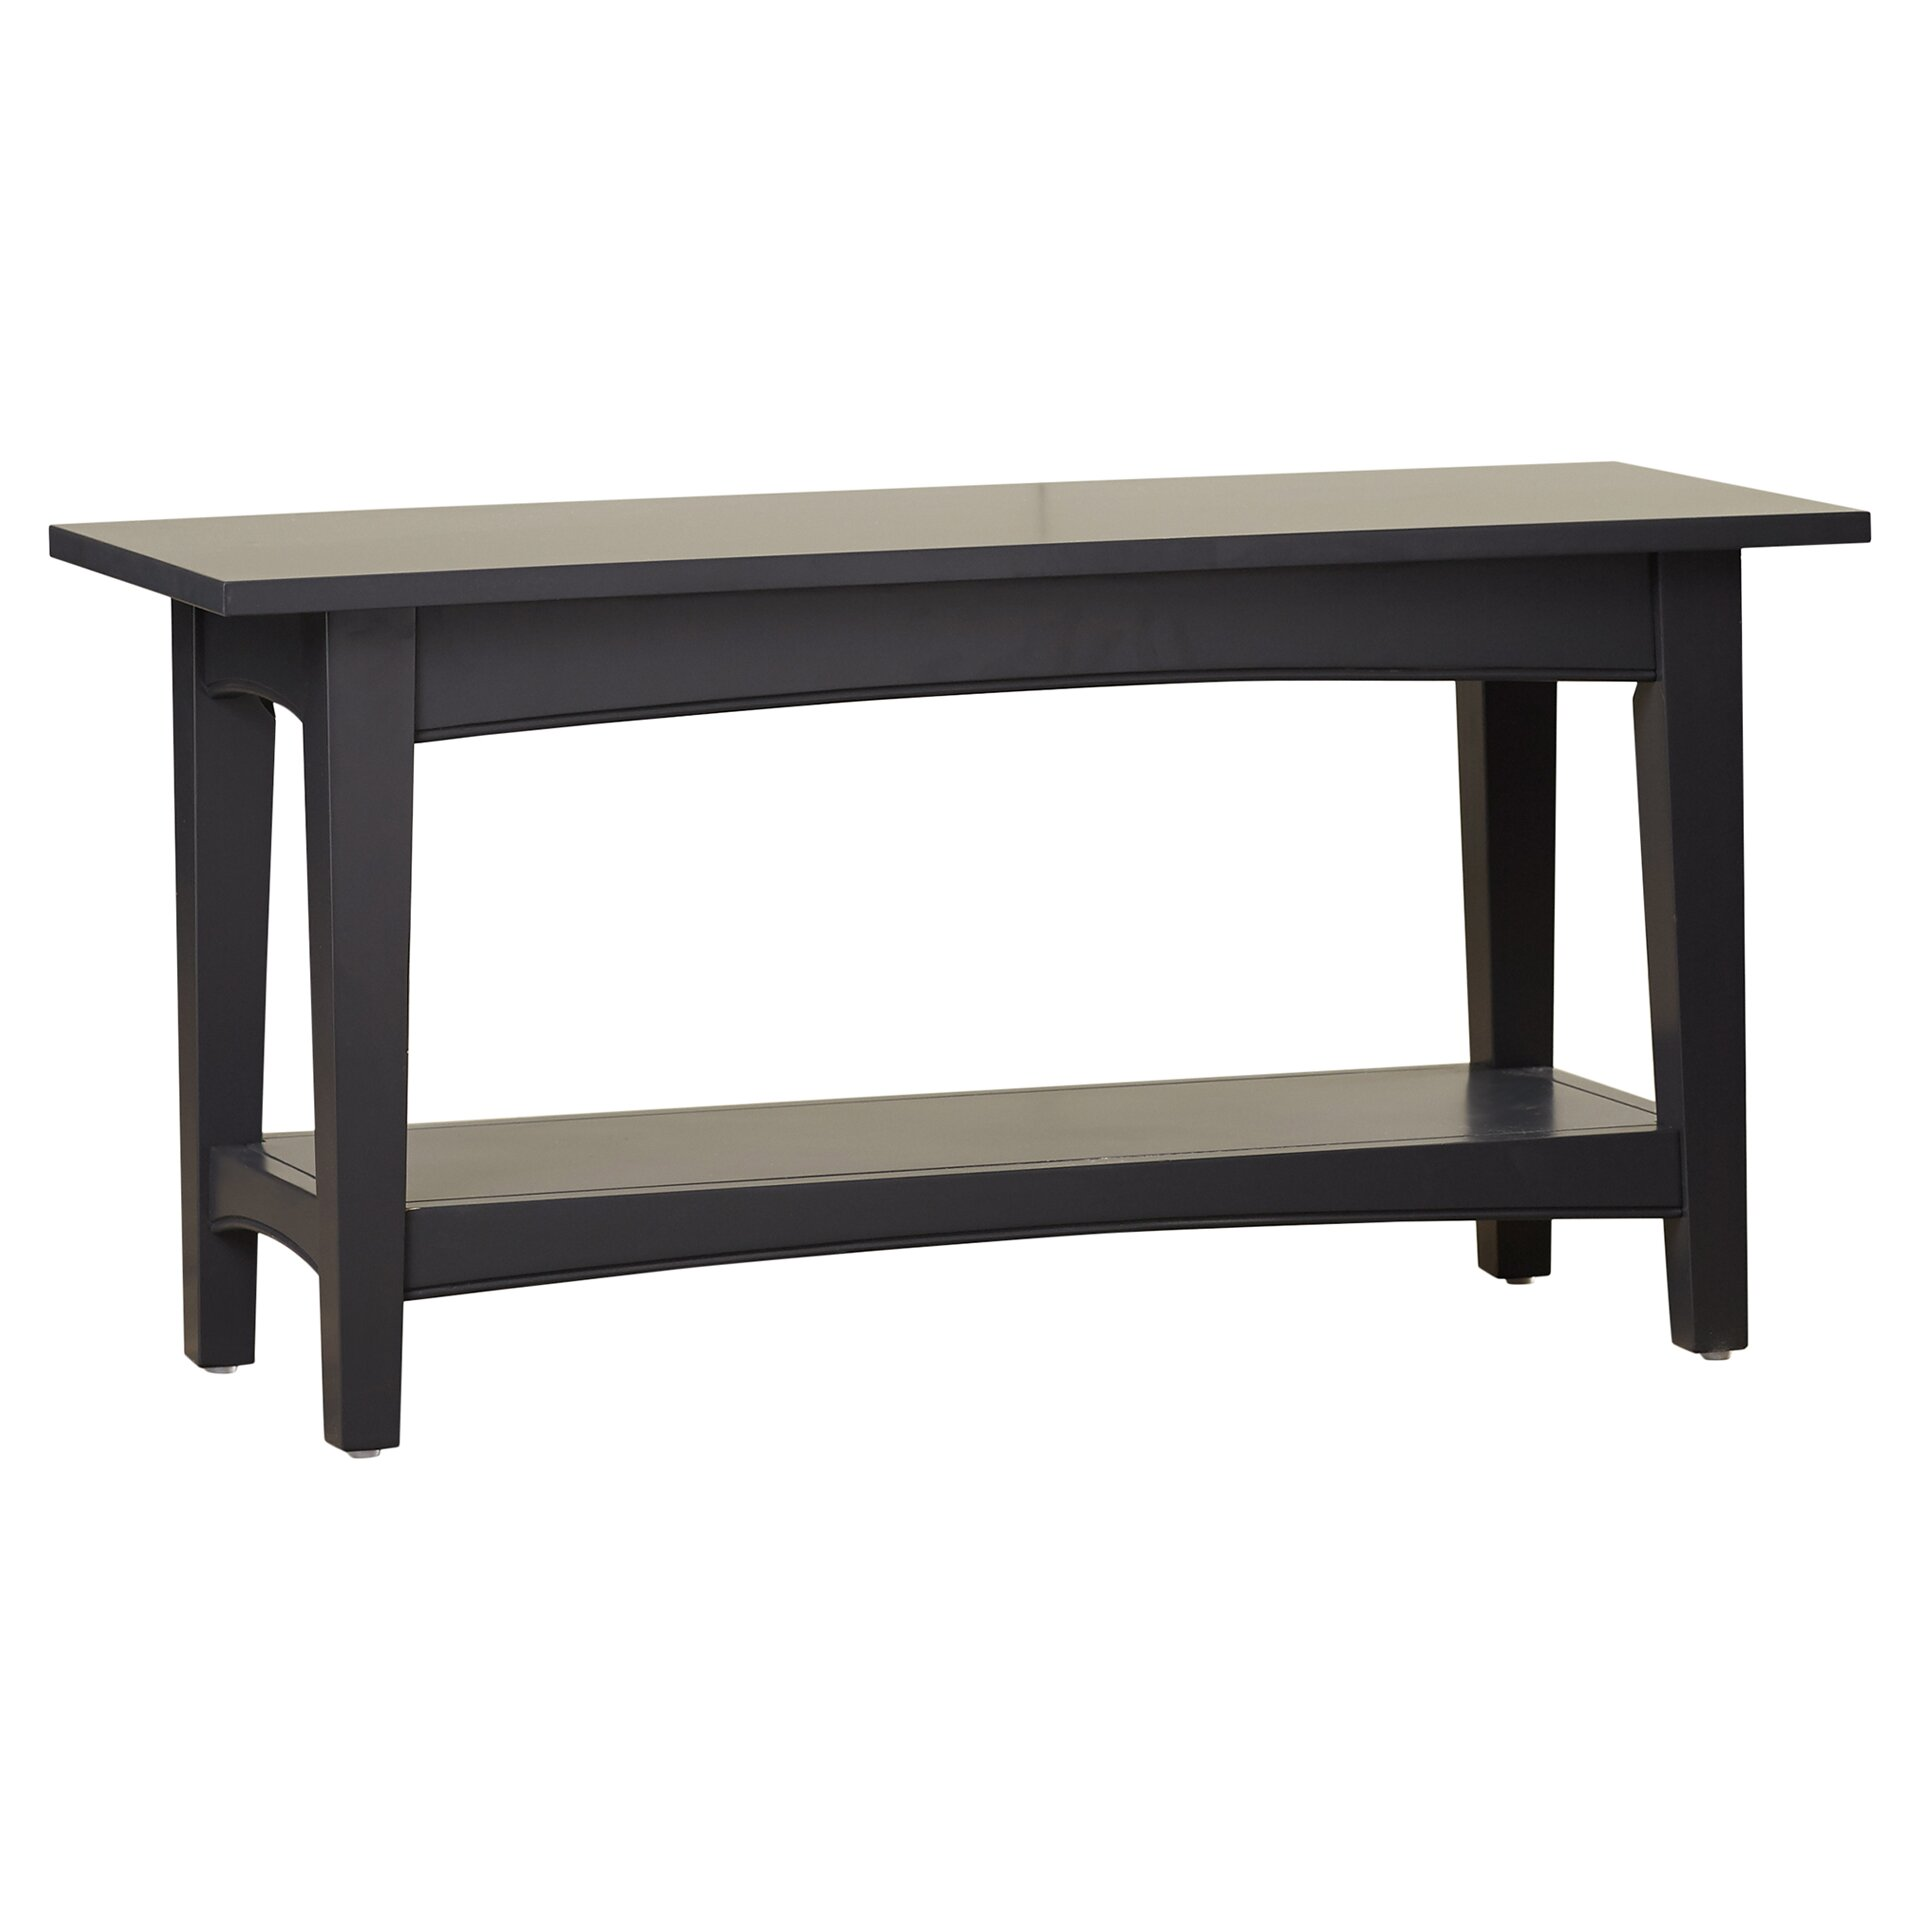 Alcott Hill Bel Air e Seat Bench Table & Reviews